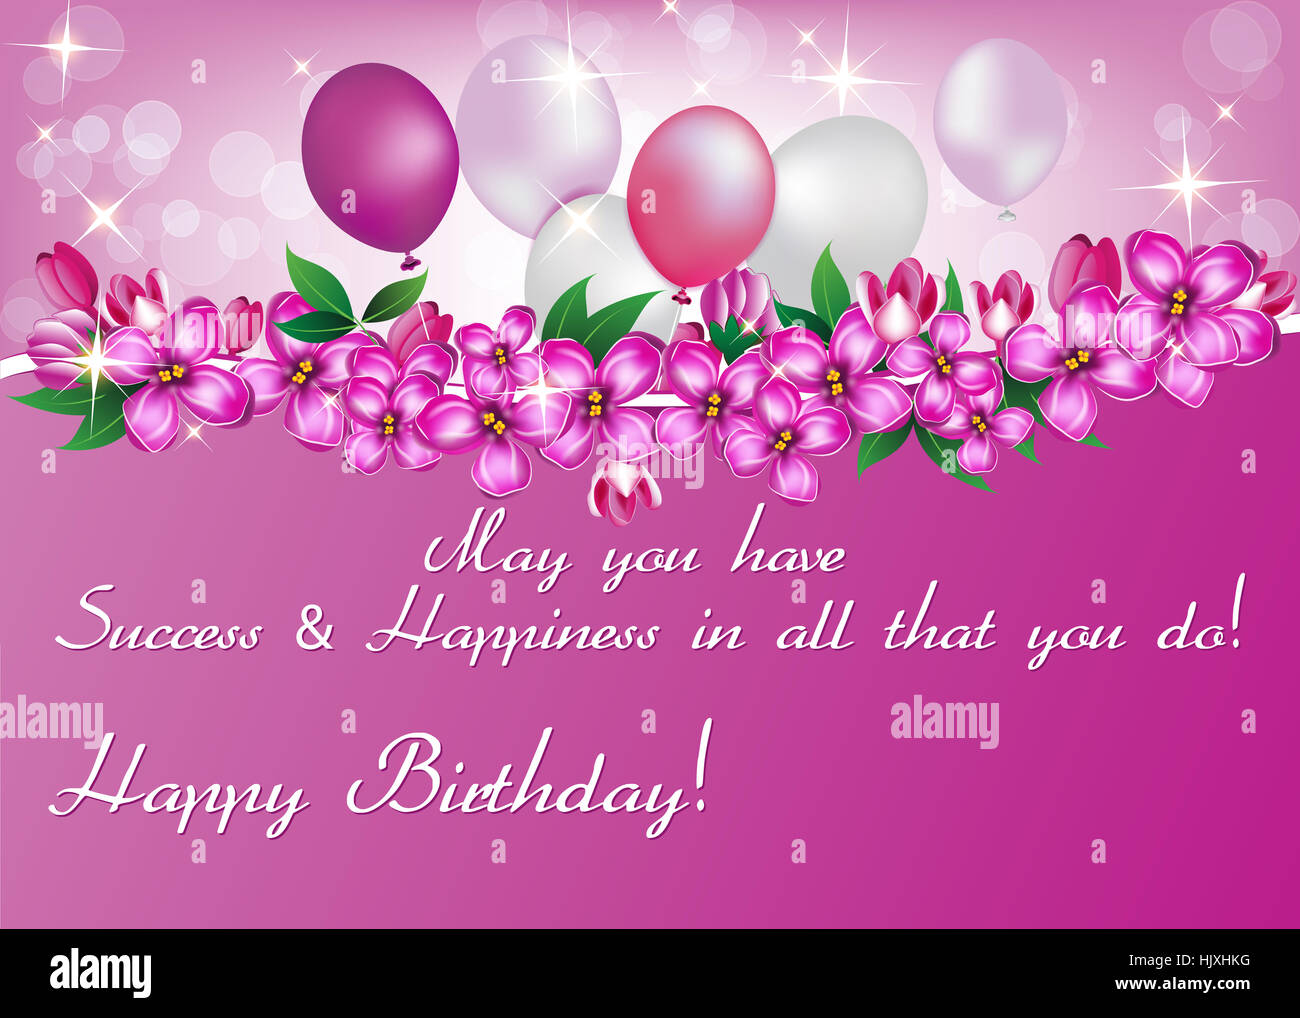 elegant birthday card also for print happy birthday elegant greeting card contains balloons flowers and presents